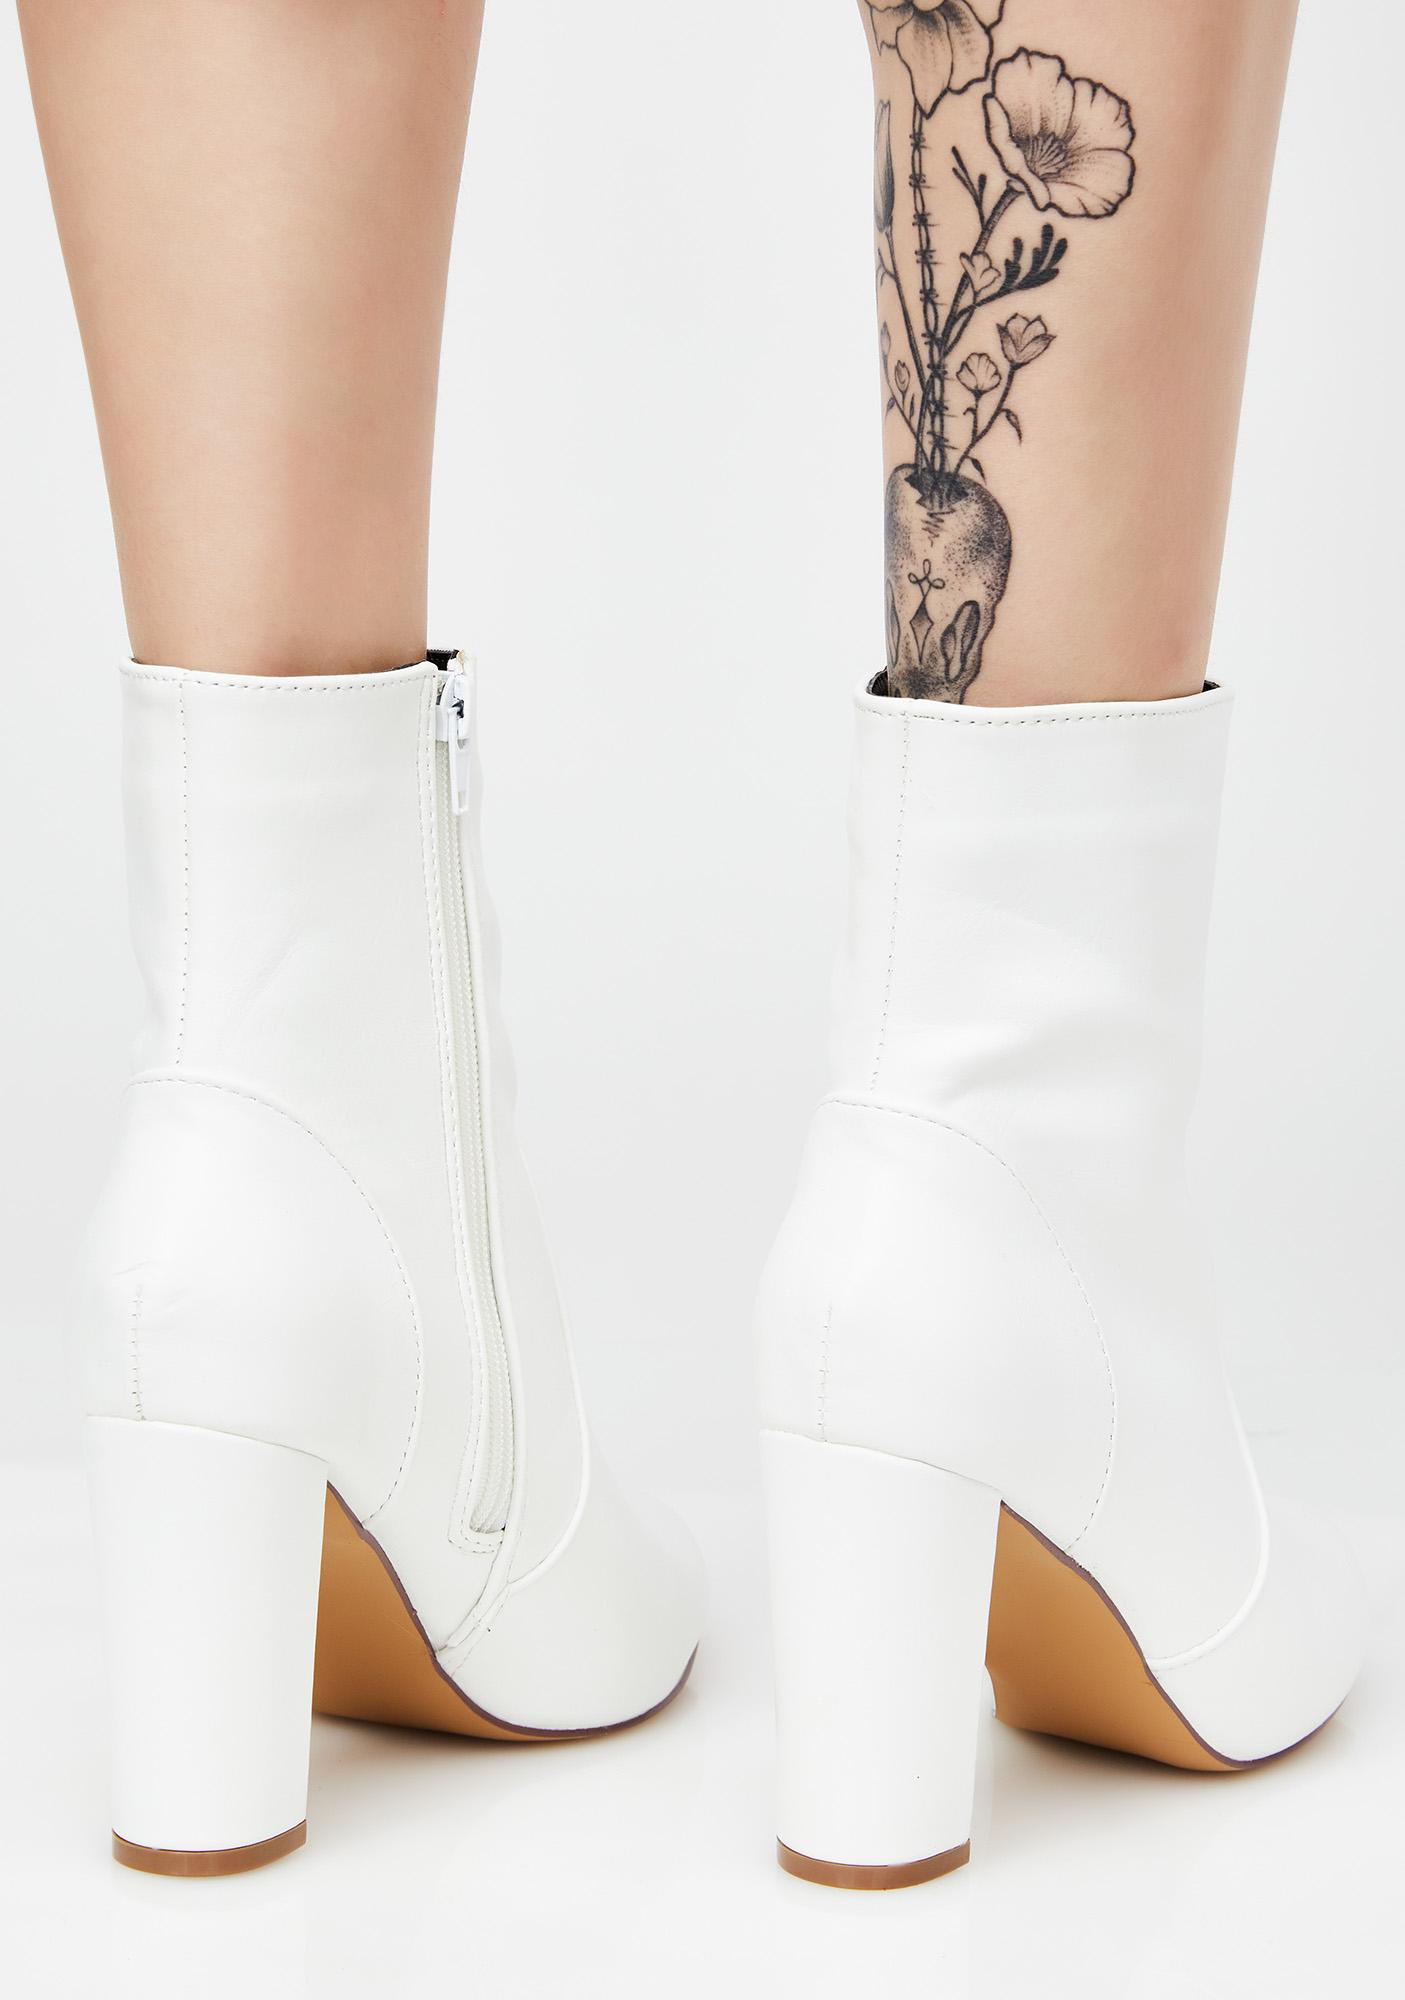 Leave It Ankle Boots